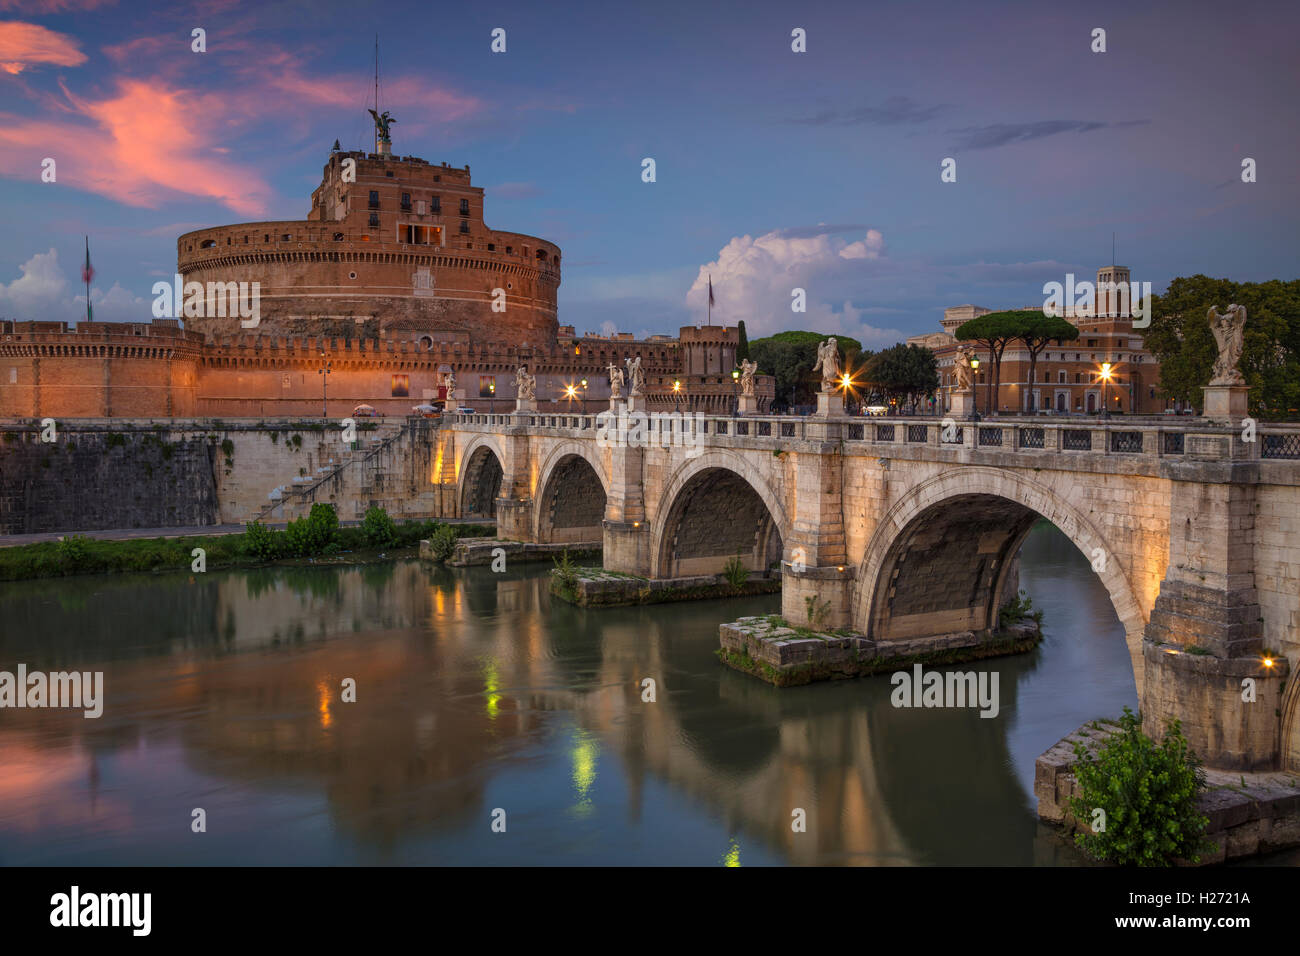 Rome. Image of the Castle of Holy Angel and Holy Angel Bridge over the Tiber River in Rome at sunset. - Stock Image